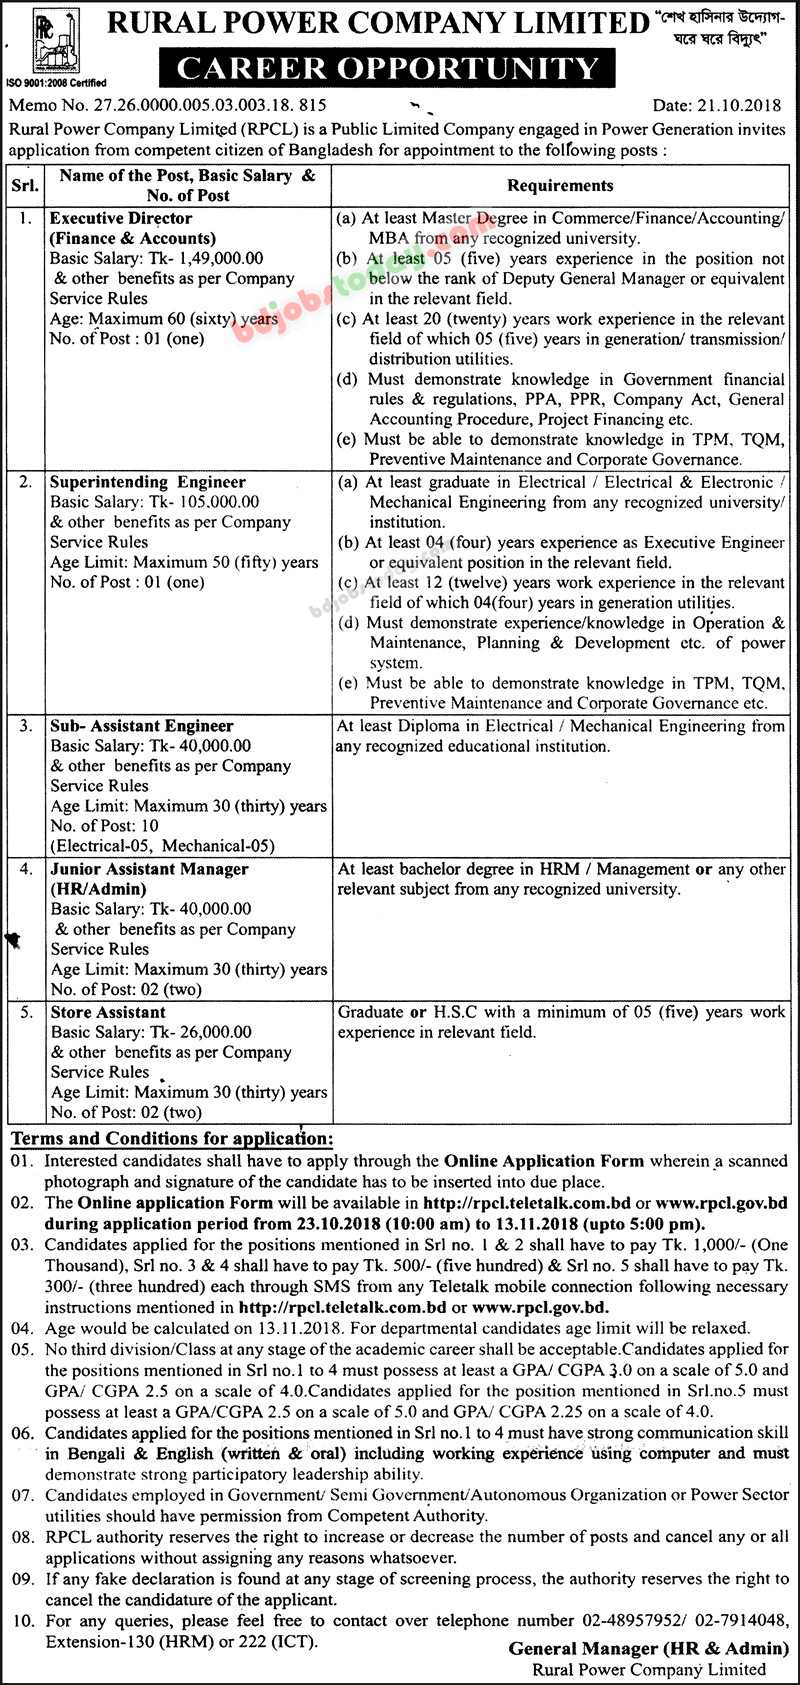 Rural Power Company Limited (RPCL) jobs